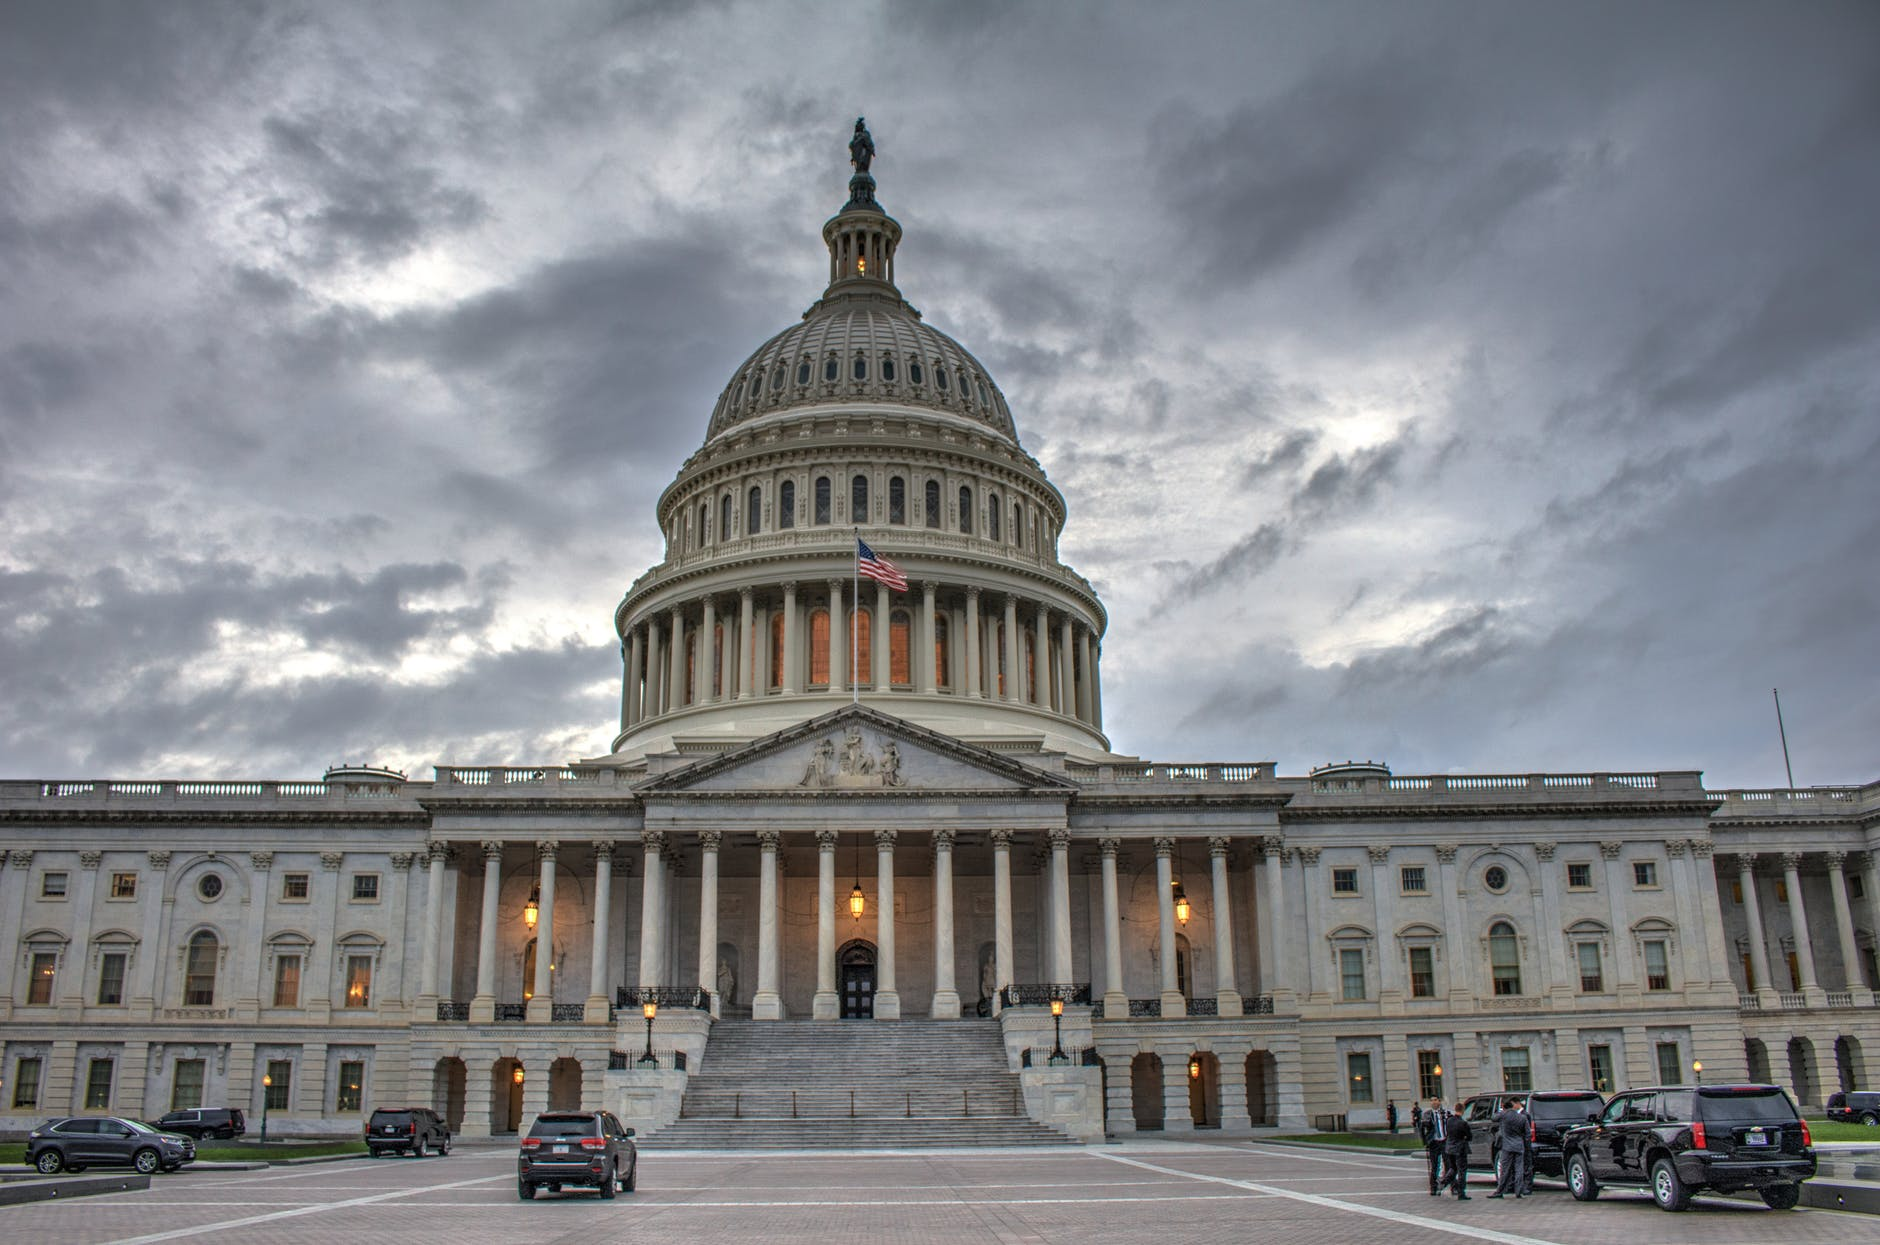 Statement Regarding Need for Safety in Autonomous Vehicle Legislation - Center for Autosafety